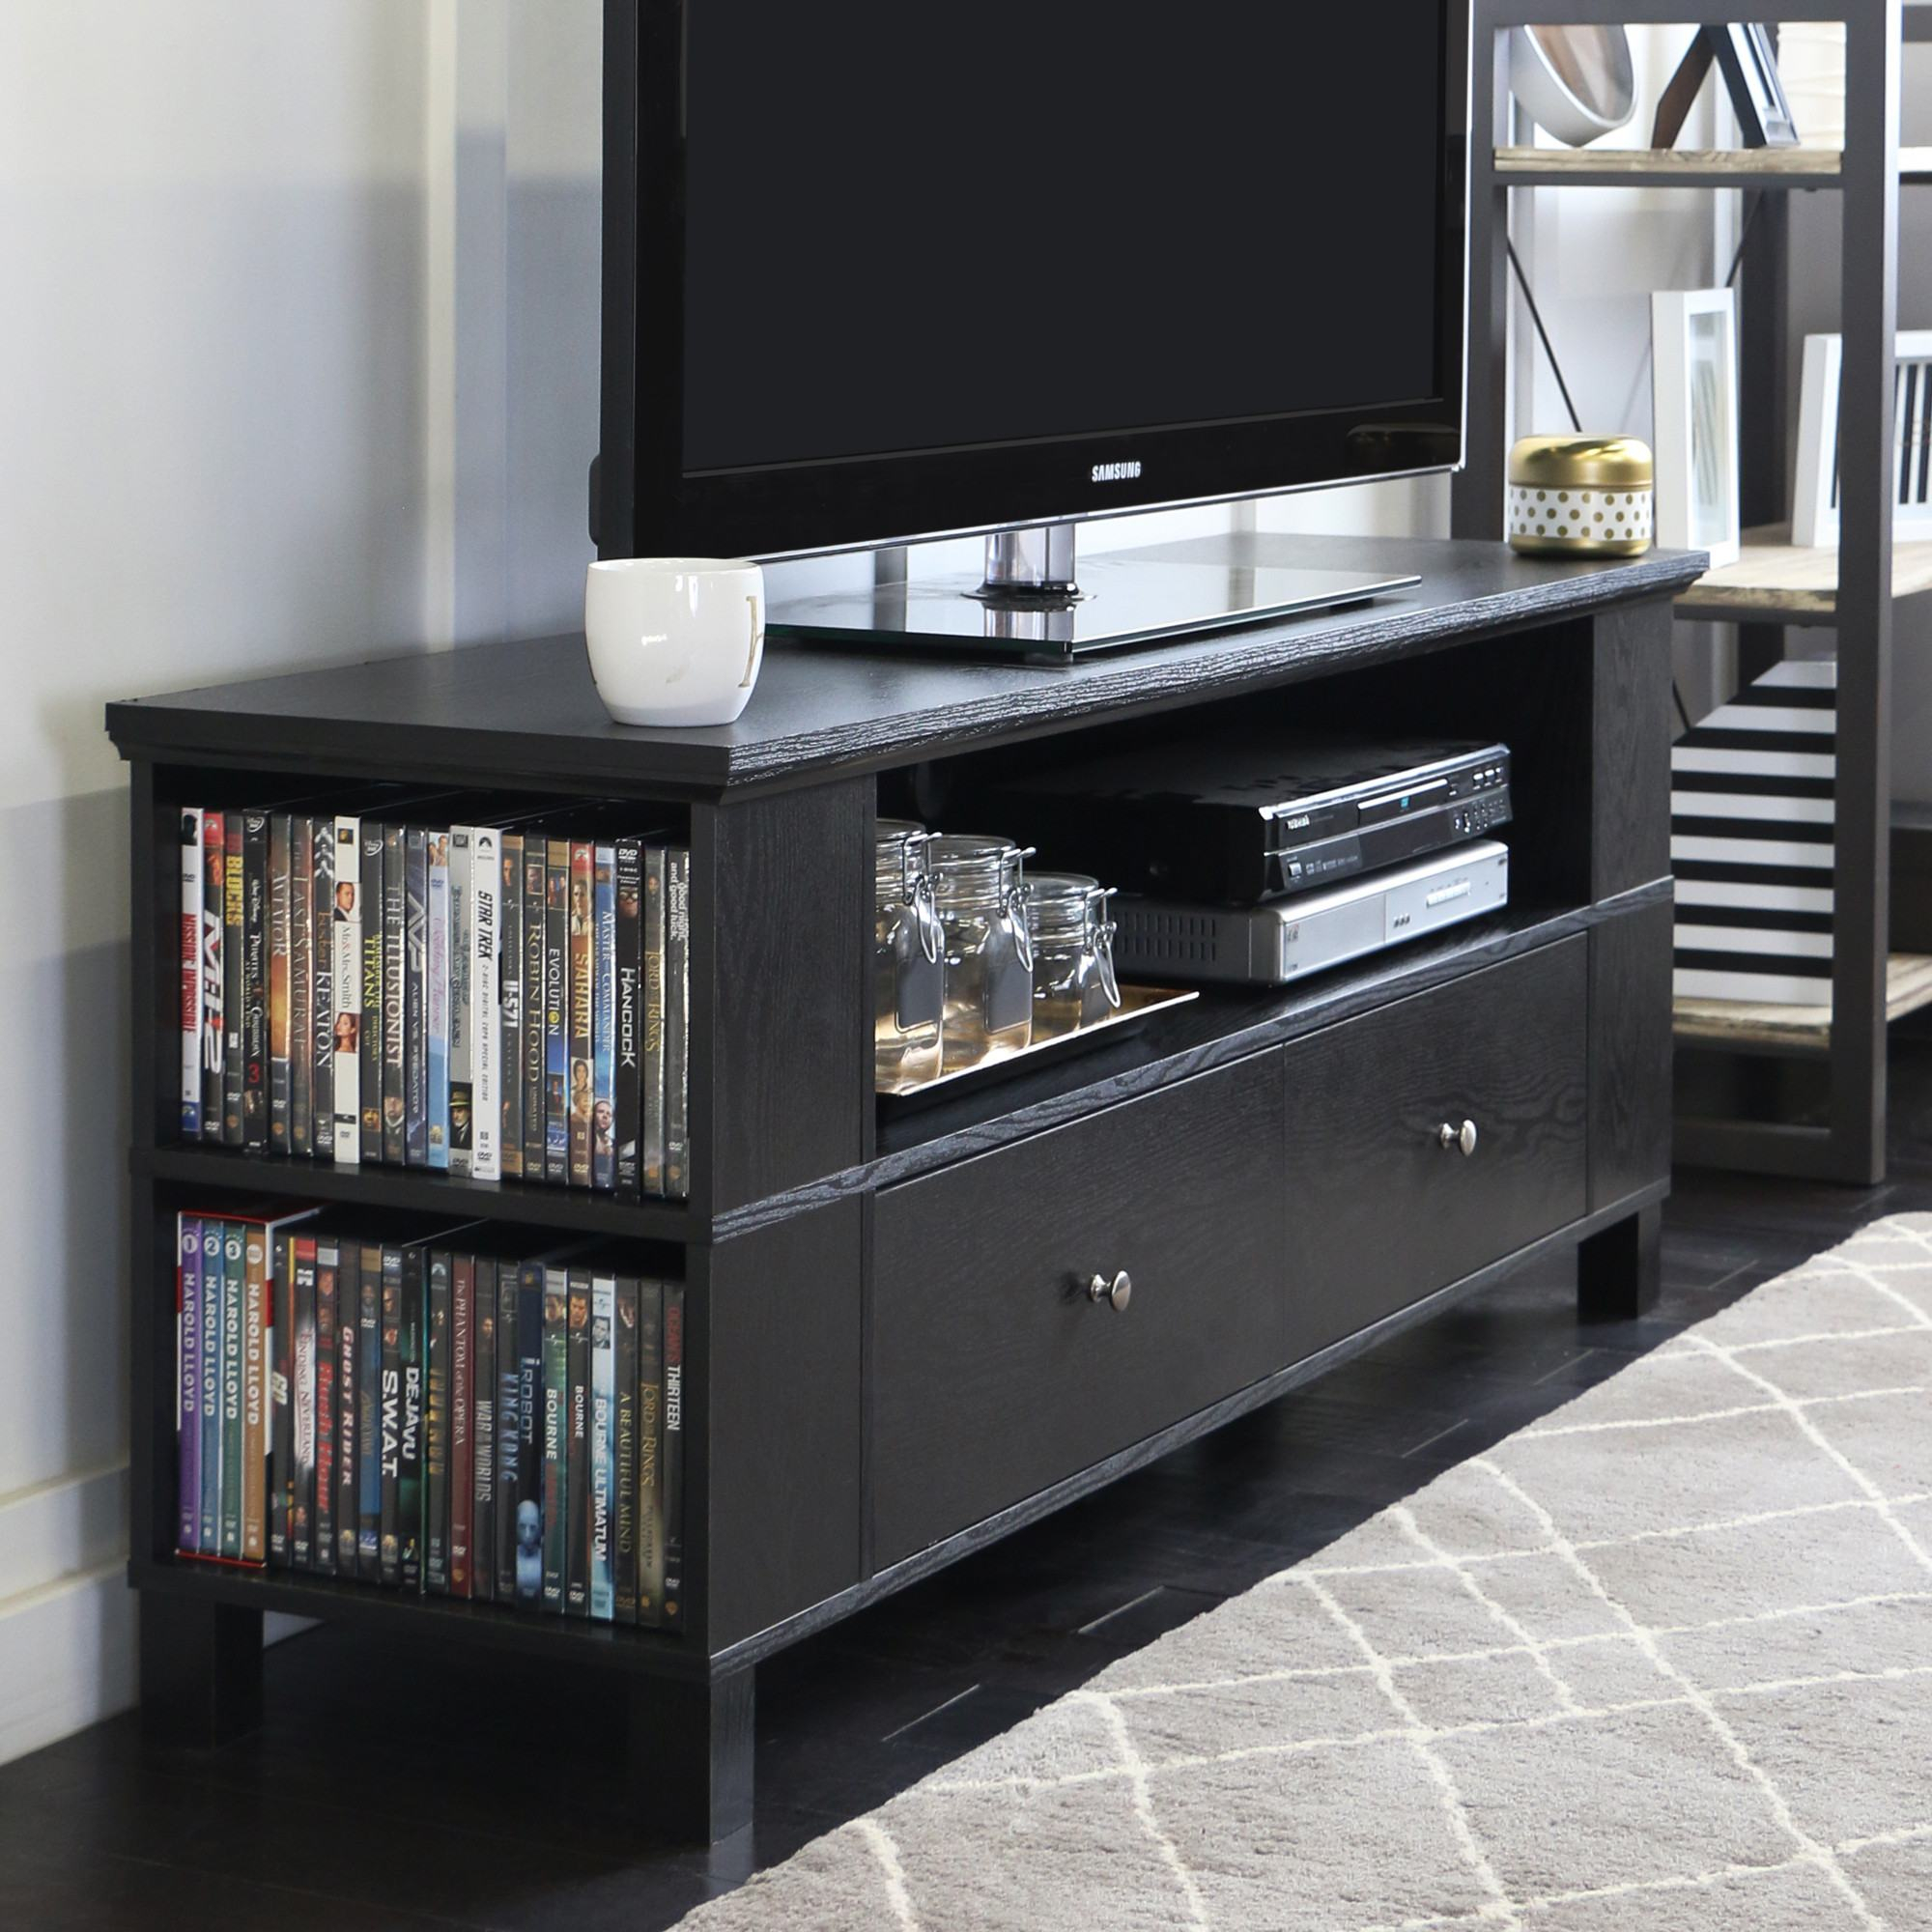 21 Newest Tv Console For 65 Inch Tv For Living Room Decor intended for Jaxon 65 Inch Tv Stands (Image 3 of 30)